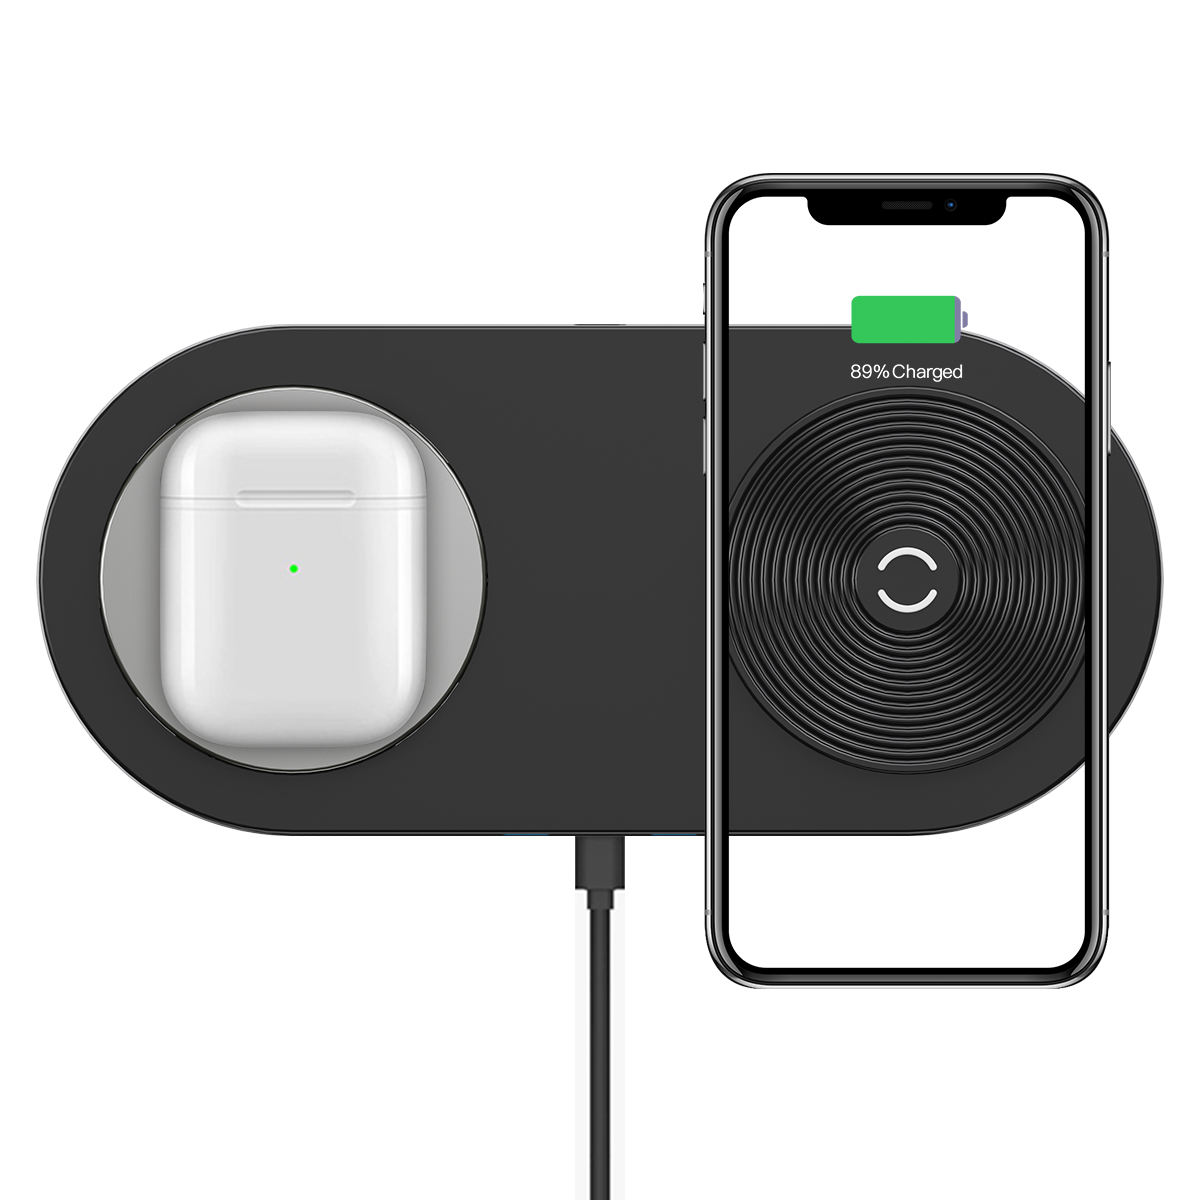 New 2019 Trending Product 12V/2A Dual Wireless Charger Pad Double Desktop Charging Station Fast Charged Two Phones